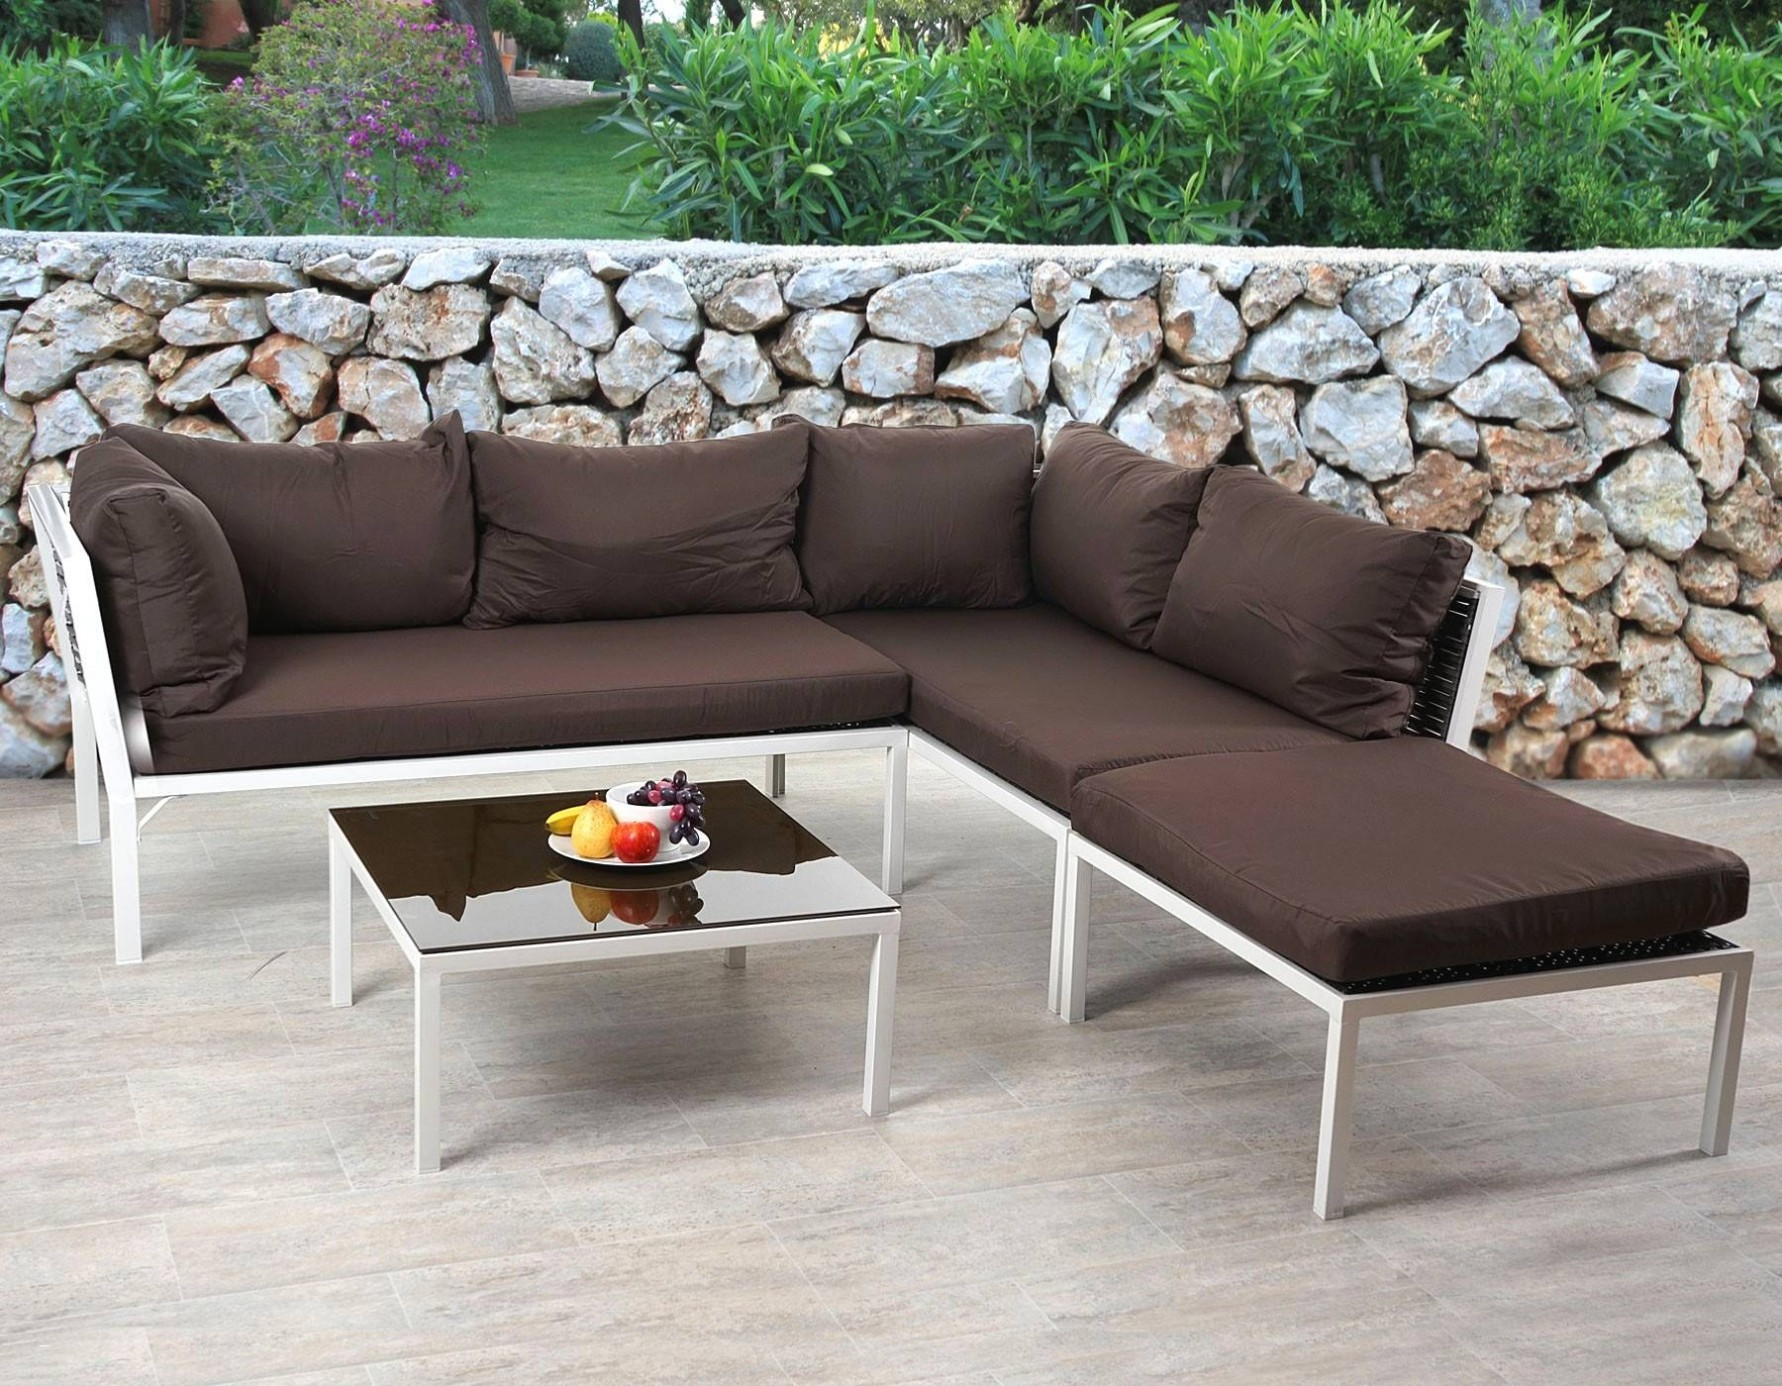 Balkon Lounge Set 25 Unique Patio Furniture Lounge Sets Vianova Project Balkon